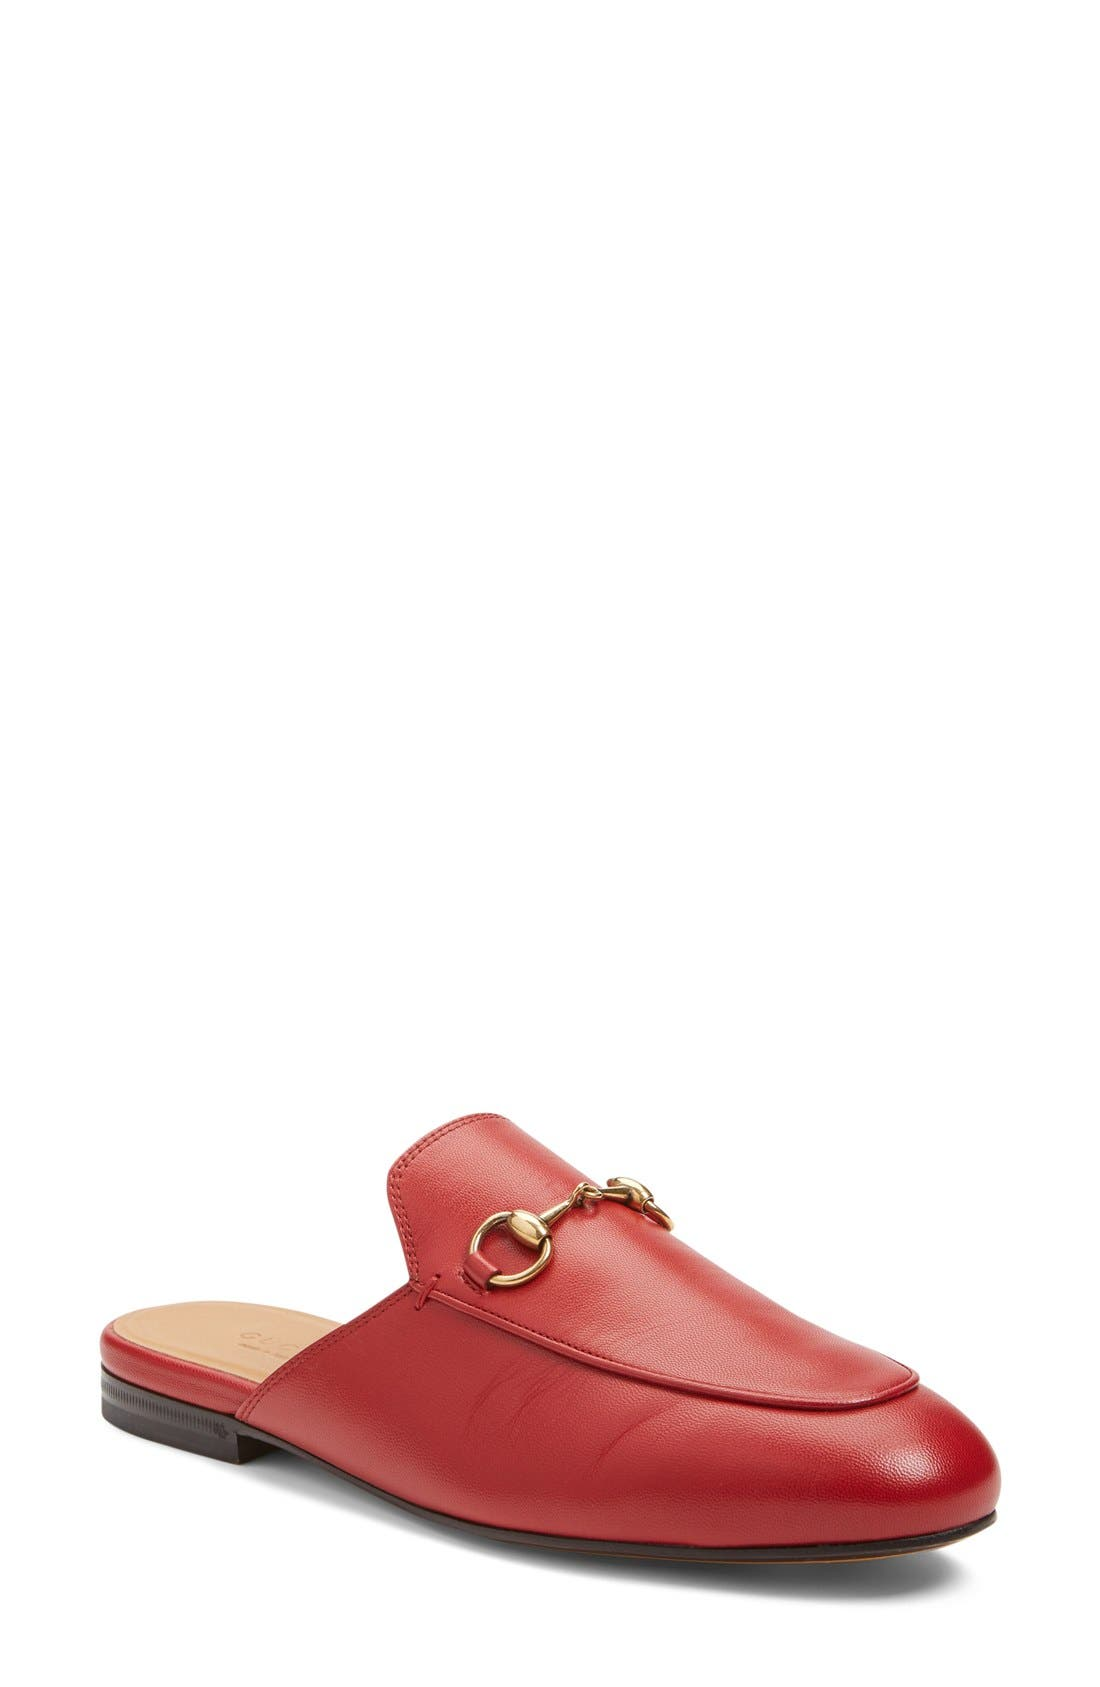 GUCCI, Princetown Loafer Mule, Main thumbnail 1, color, RED LEATHER